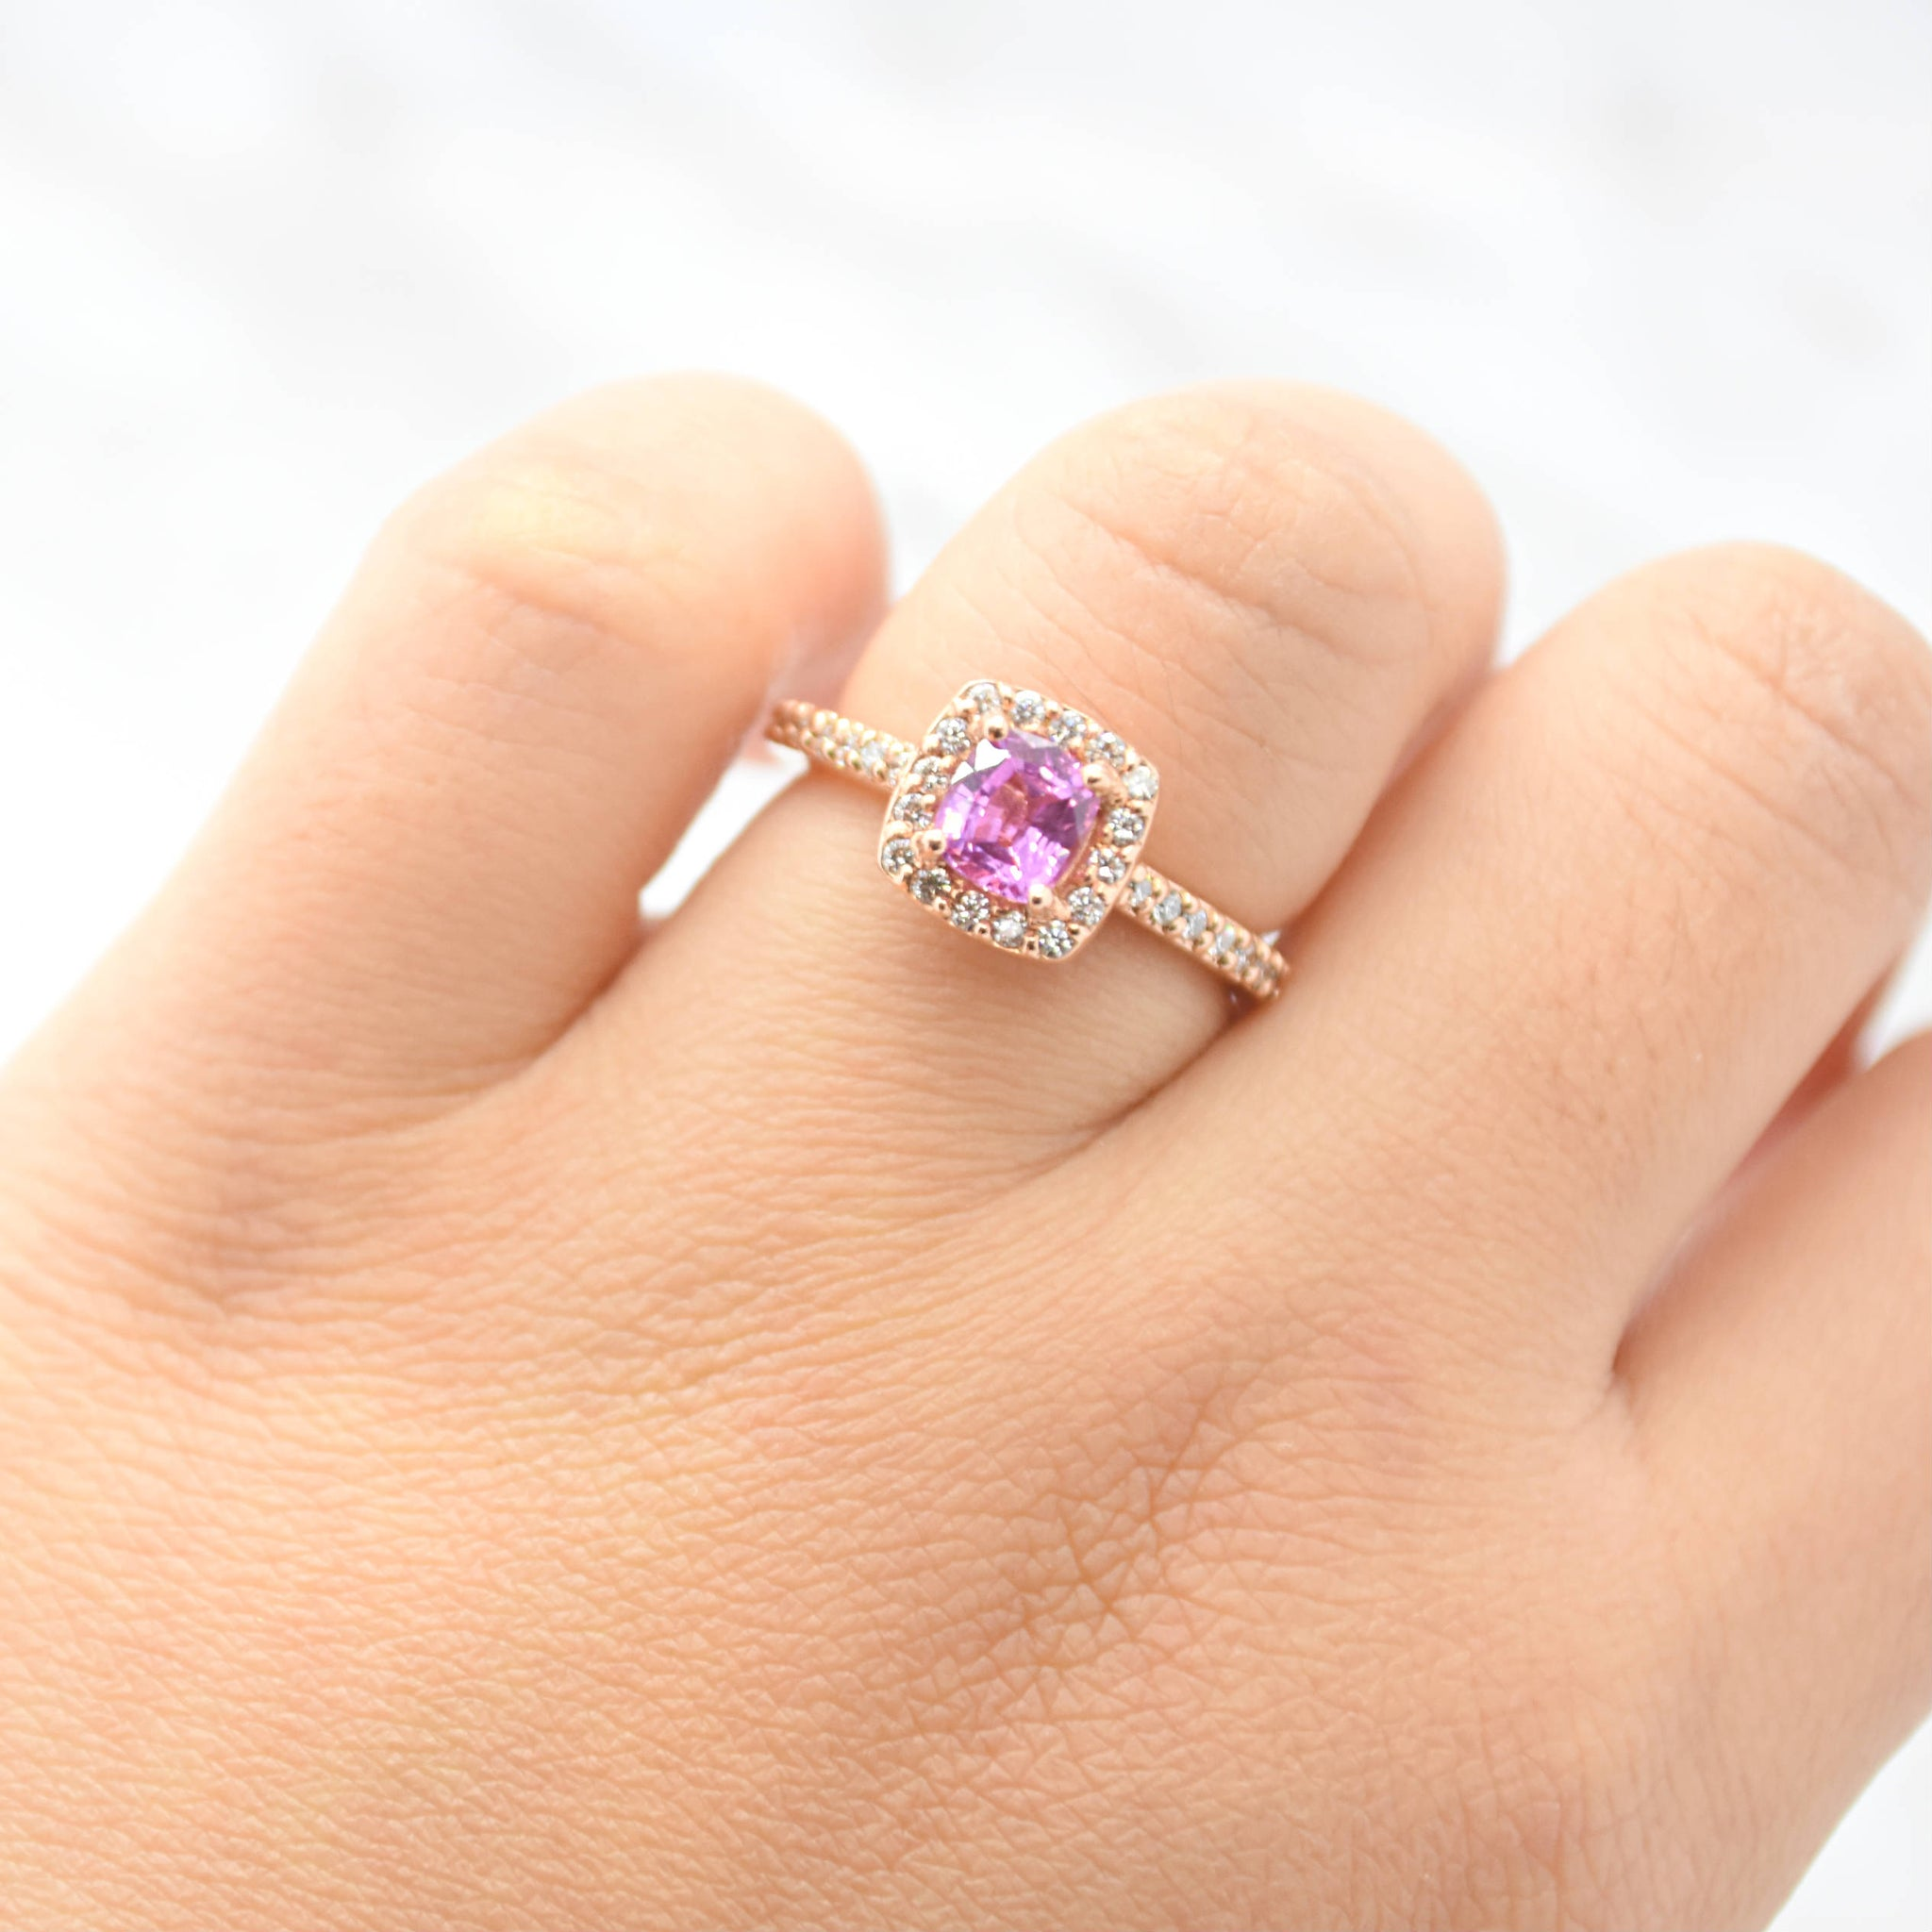 sale pink a rings halo baguette at id sapphire ring engagement jewelry carat stone for diamond master platinum gold j